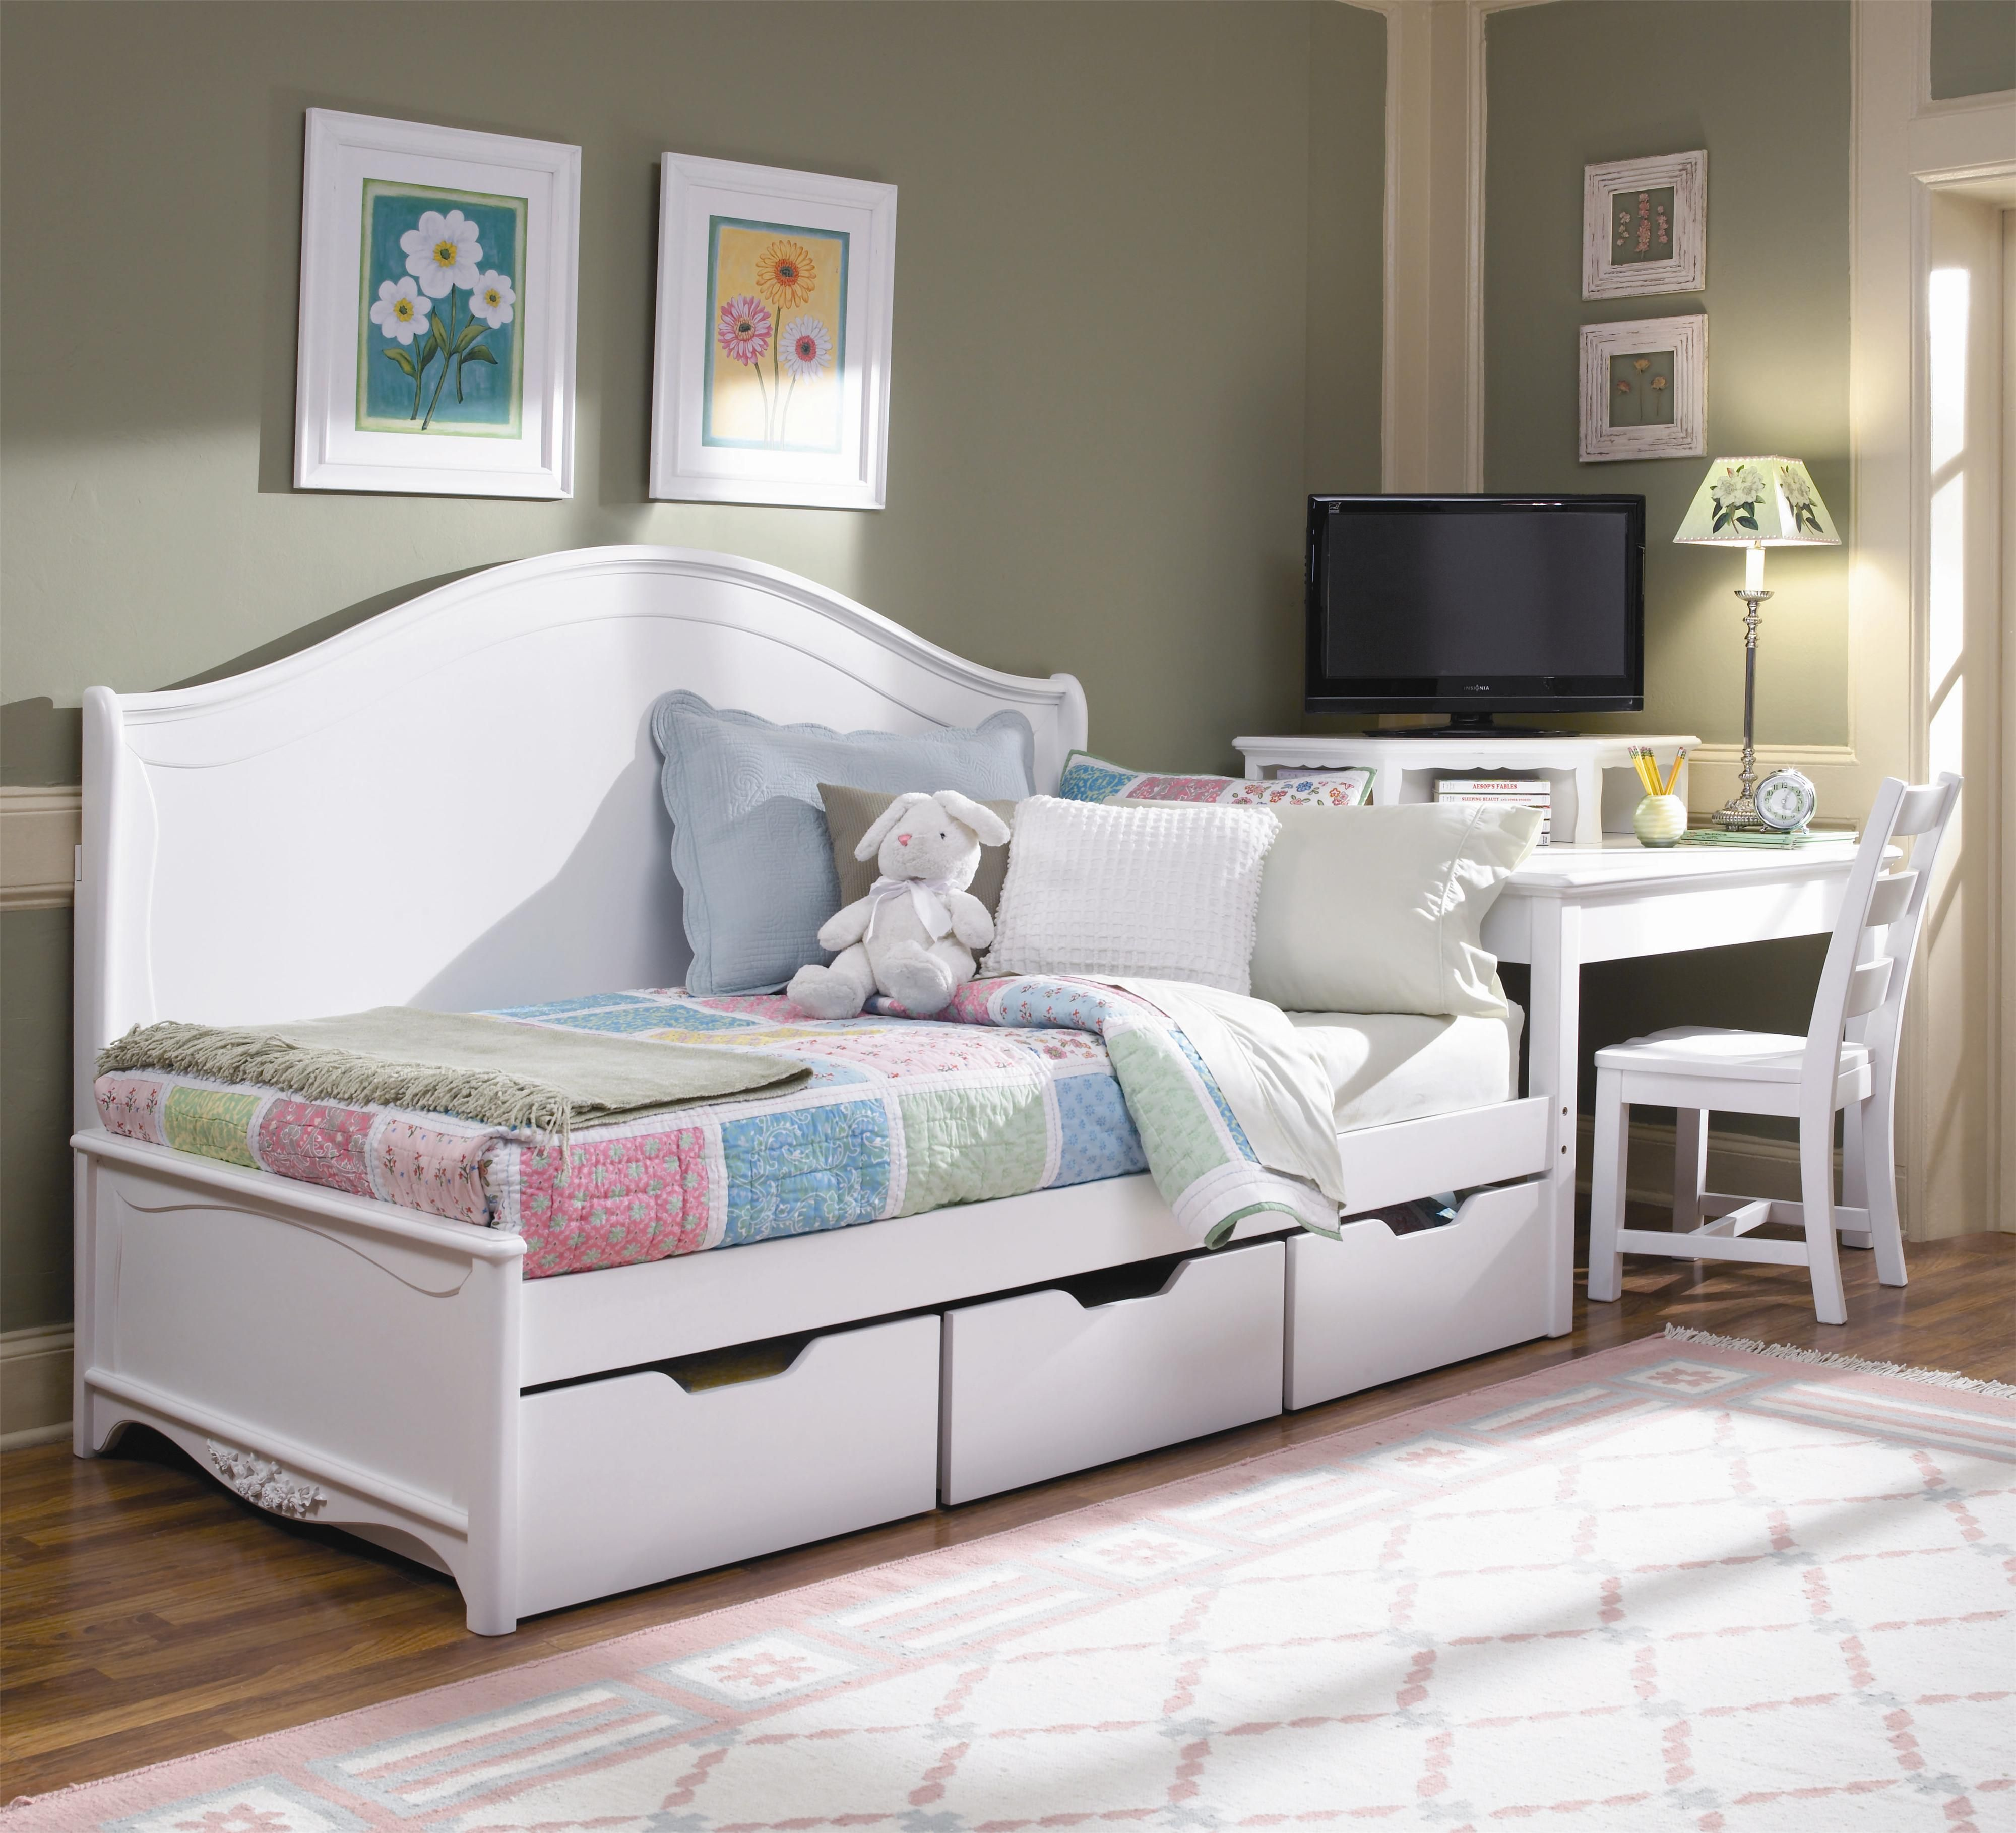 well hardwood wooden blue ideas area daybed design frame mattress daybeds on and dark size white trundle brown cream with stained frames wall bedroom upholstered combined full storage furniture drawers as marine black rug painted pleasurable varnished